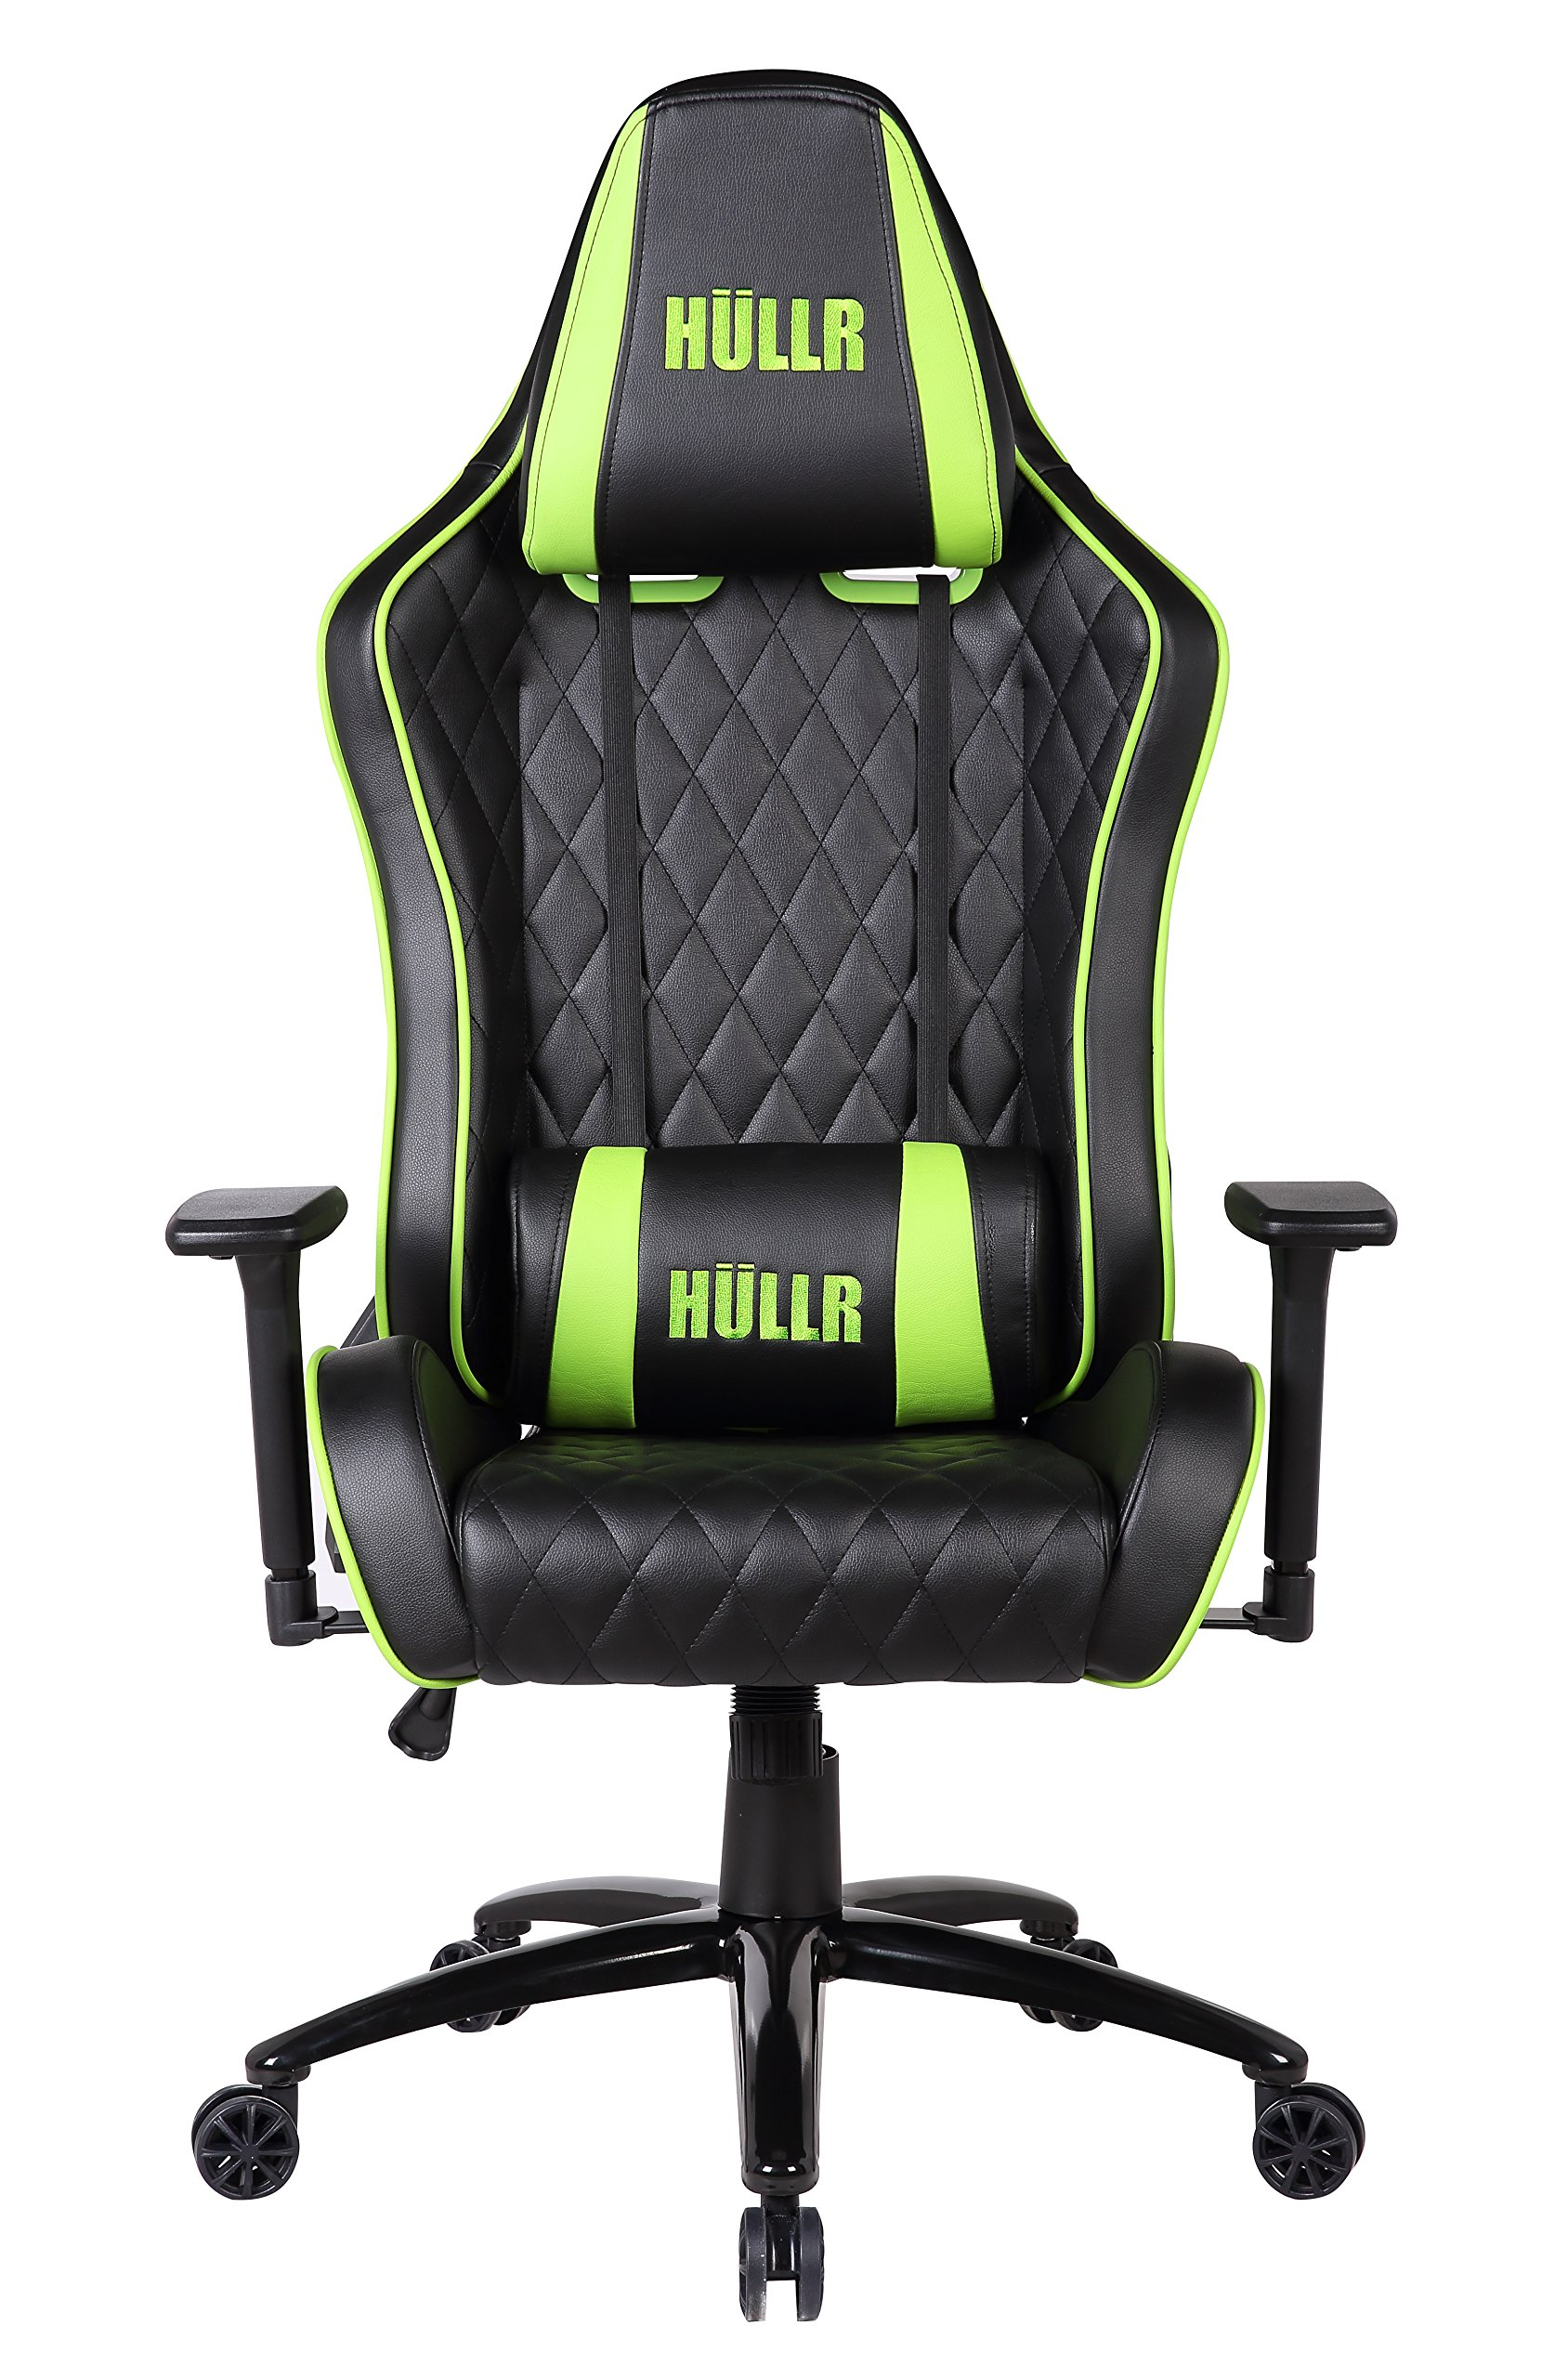 HULLR Gaming Racing Computer Office Chair, Executive High Back Diamond Quilted Ergonomic Reclining Design with Detachable Lumbar Backrest & Headrest (PC PS4 XBOX Laptop) (Black/Green)